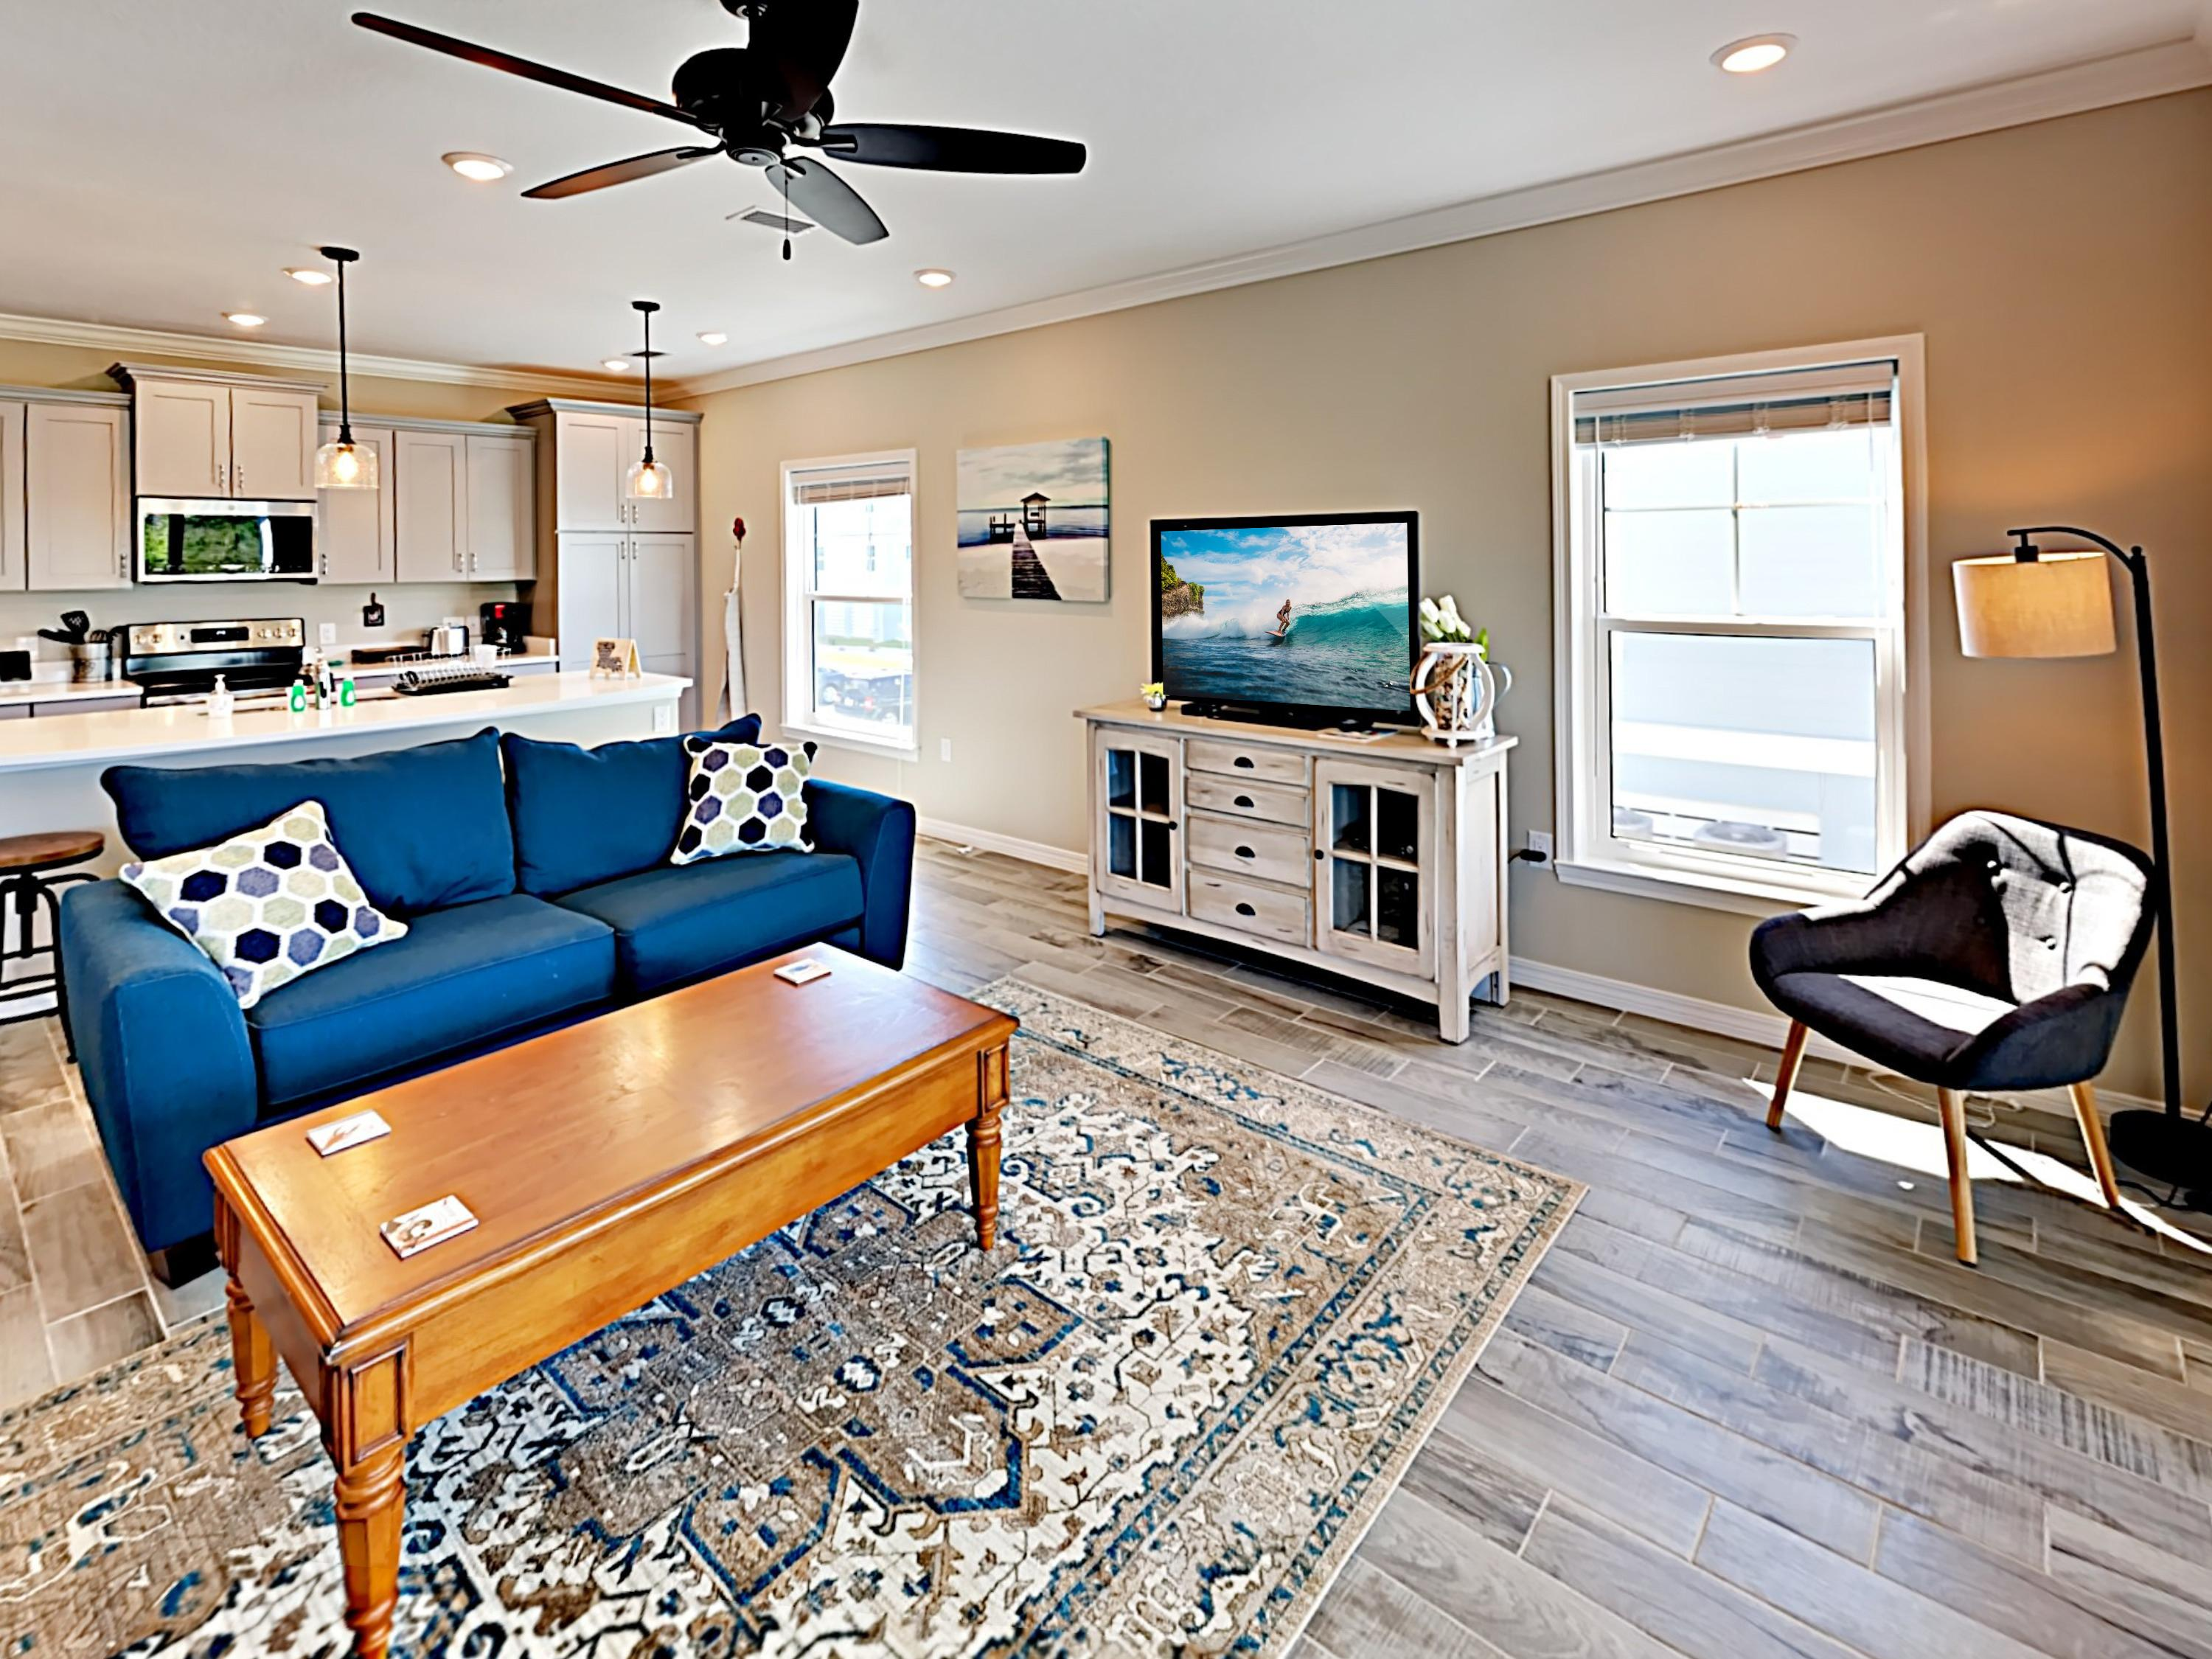 Welcome to Perdido Key! This townhome is professionally managed by TurnKey Vacation Rentals.